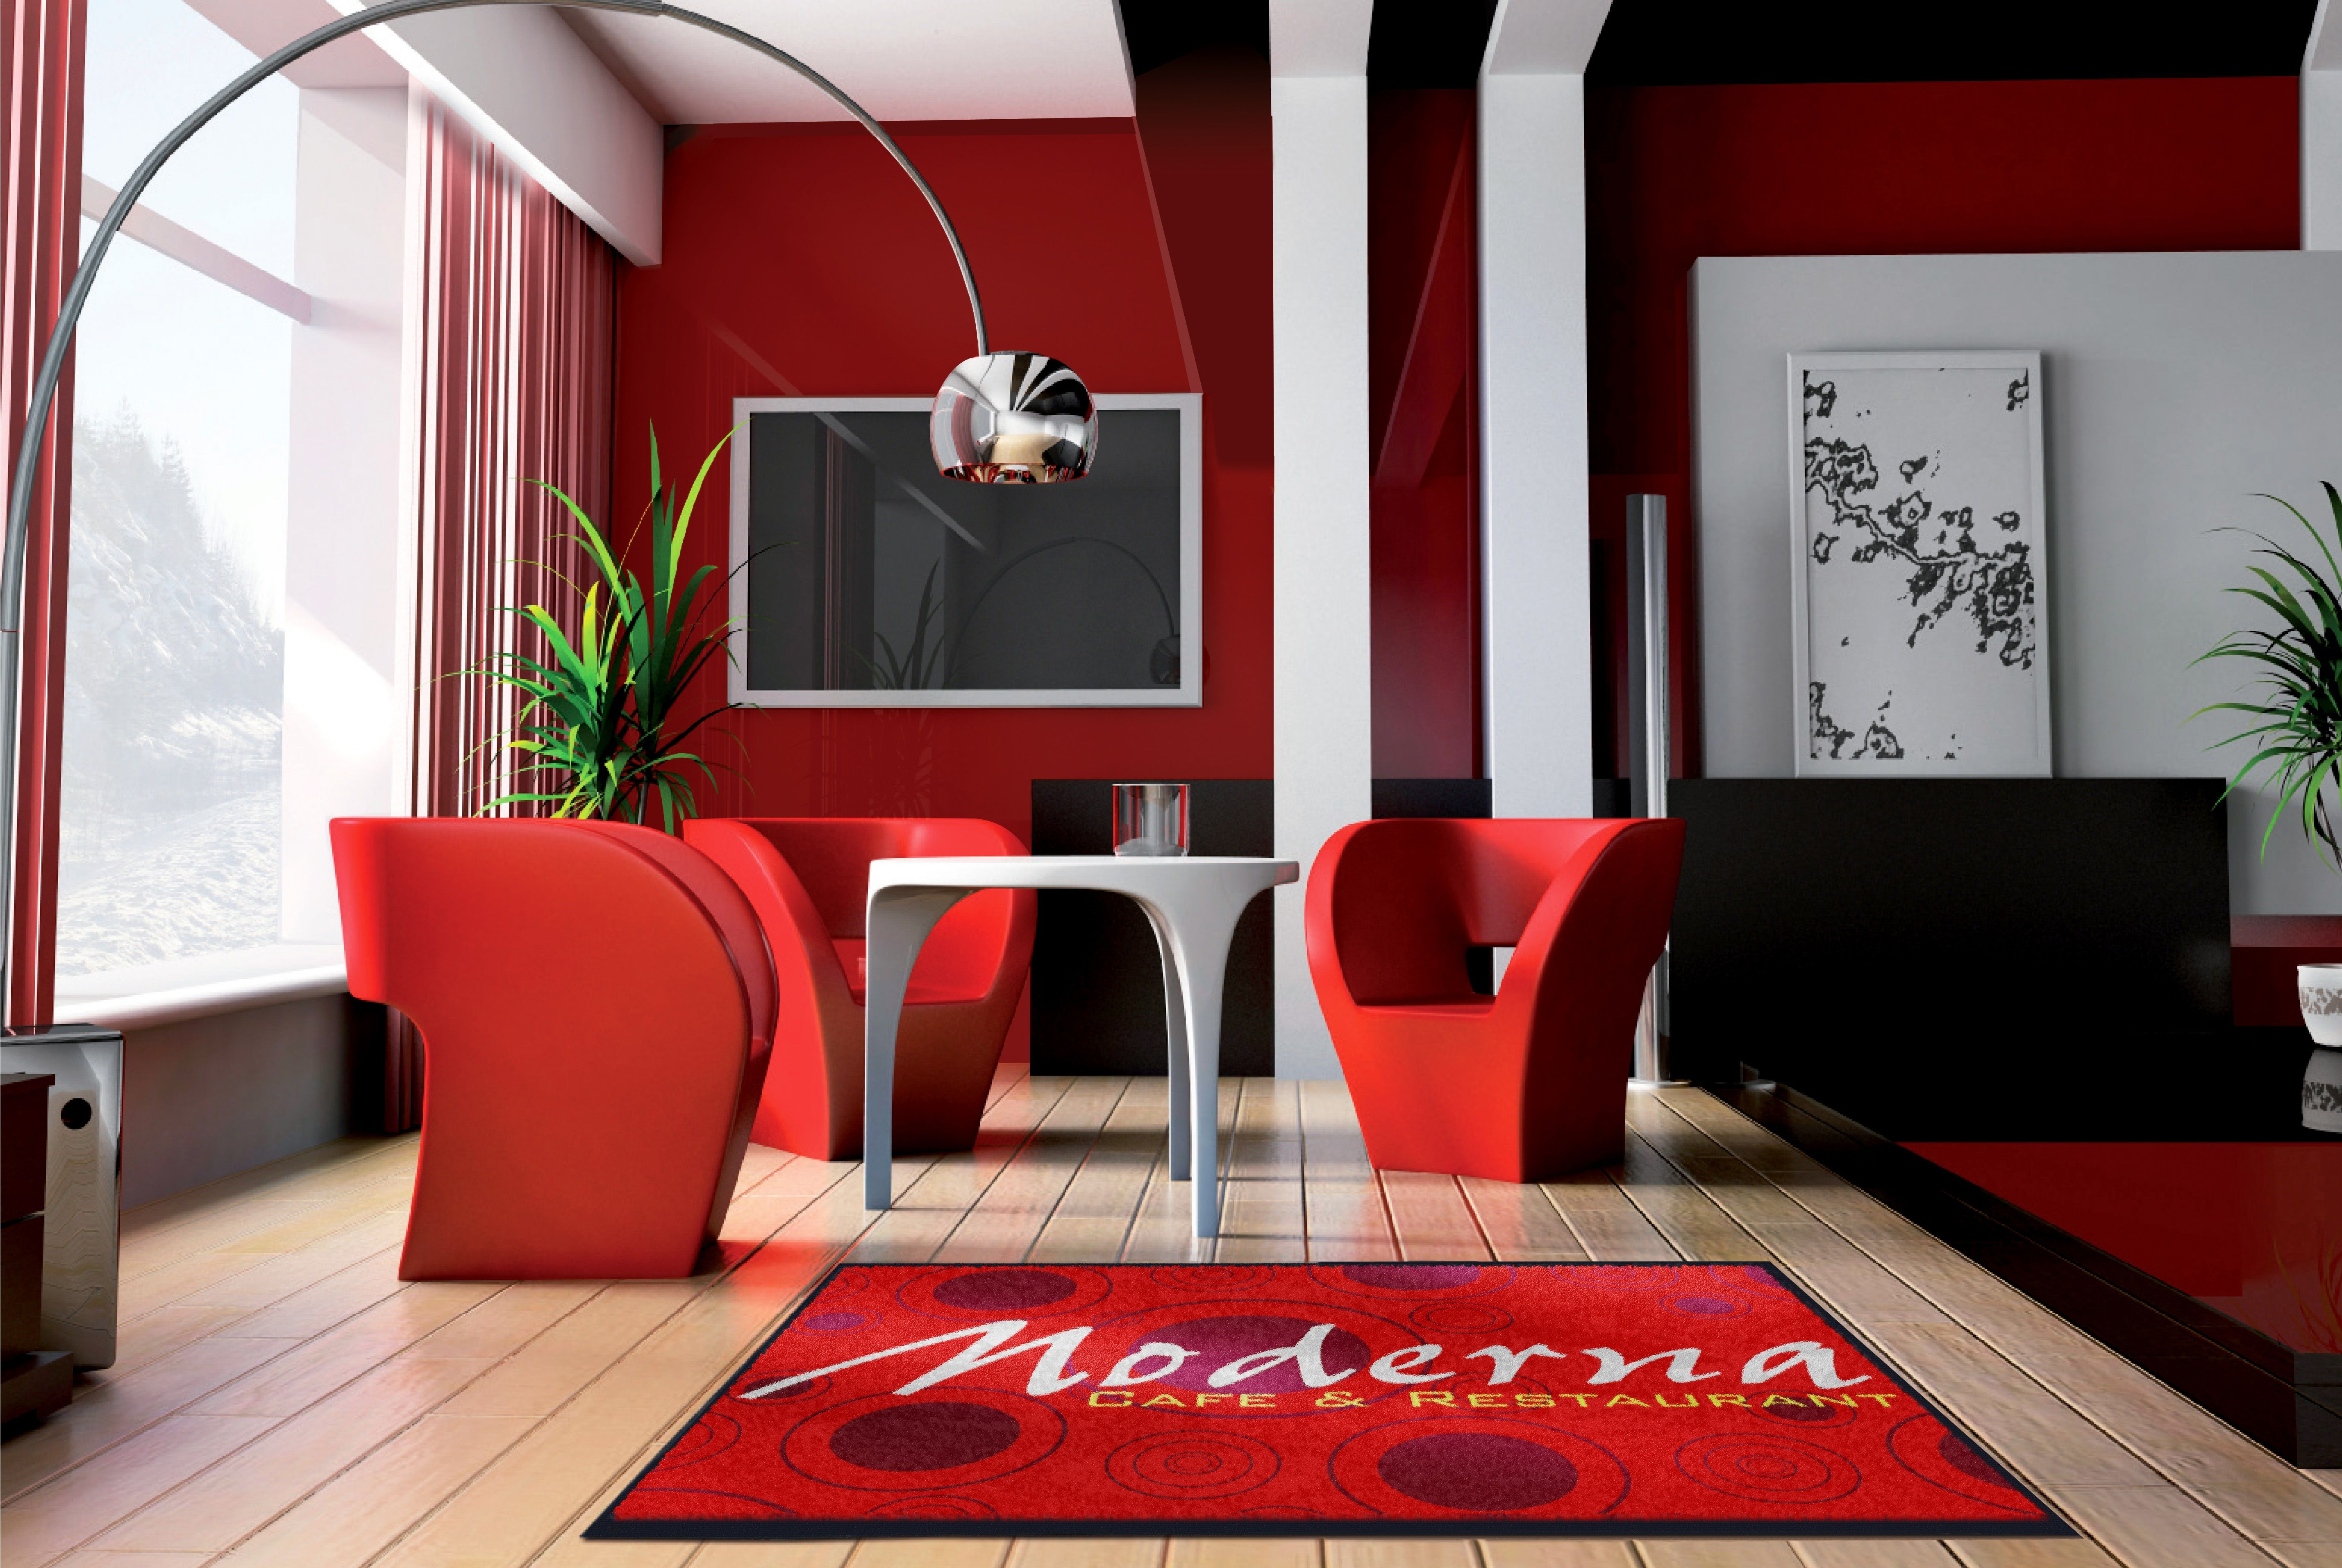 Dare to wear Red…Our logo mats look impressive in any